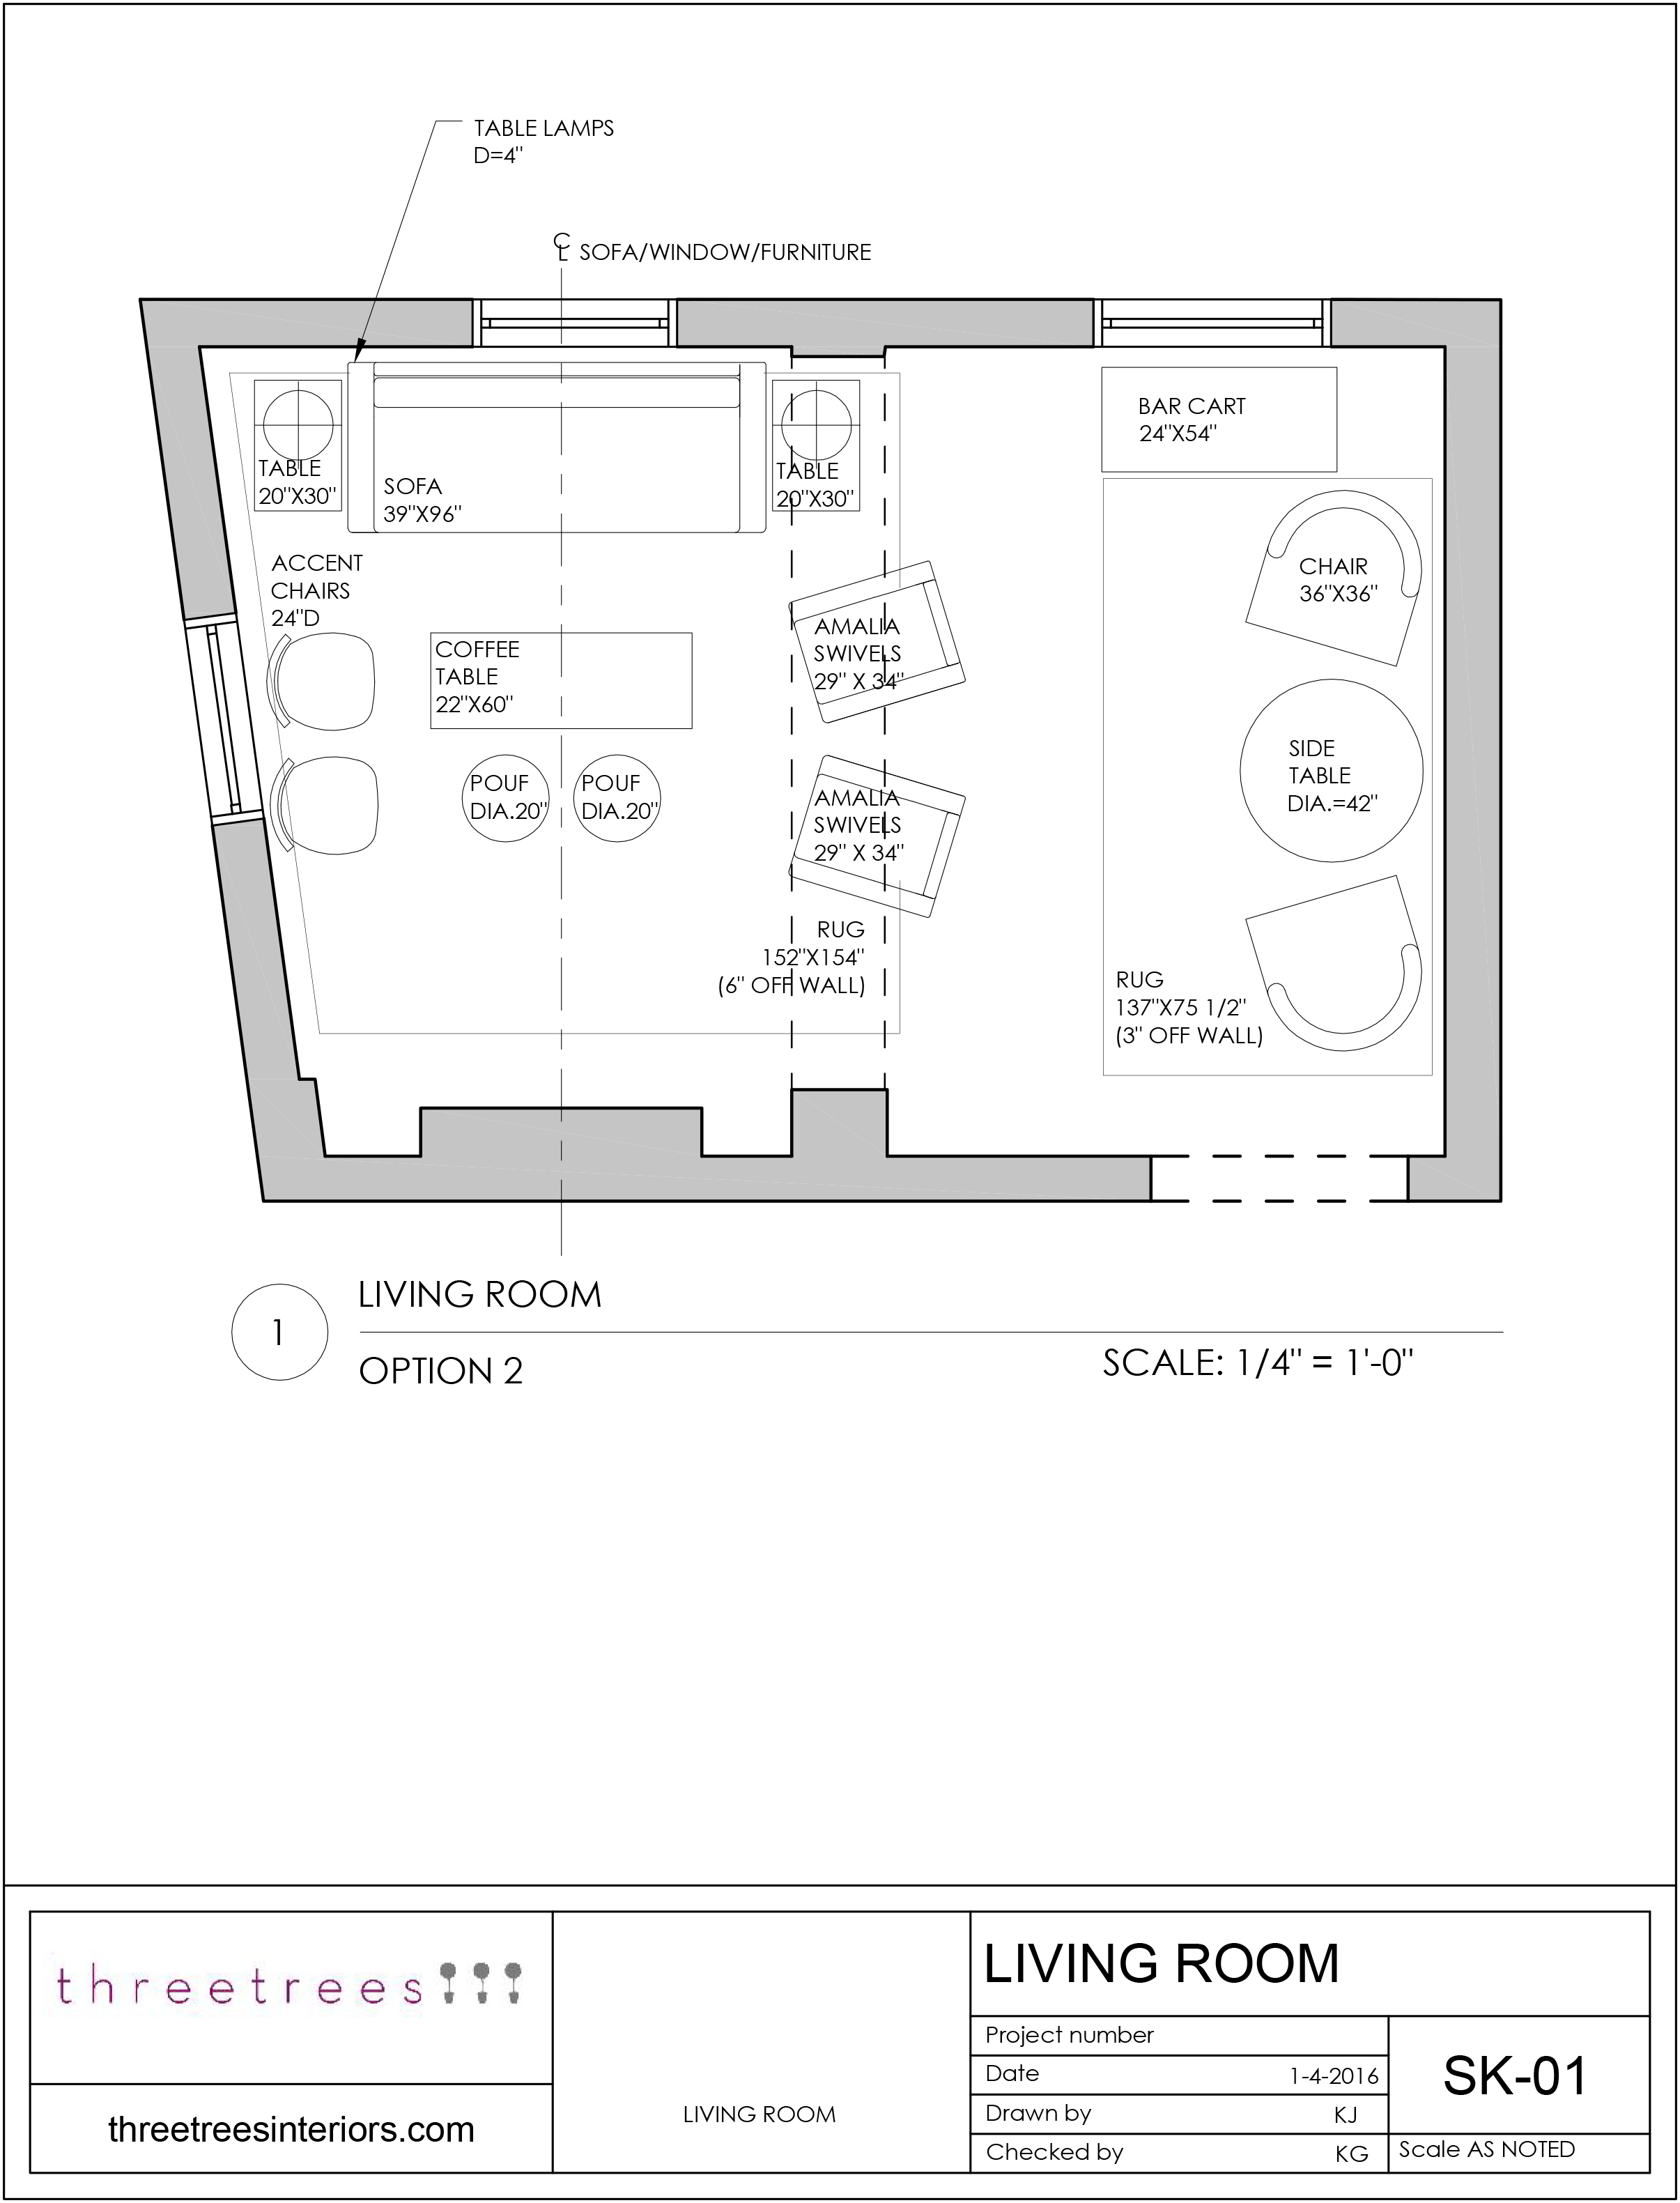 Space Planning and Schematic Design - Threetrees Interiors